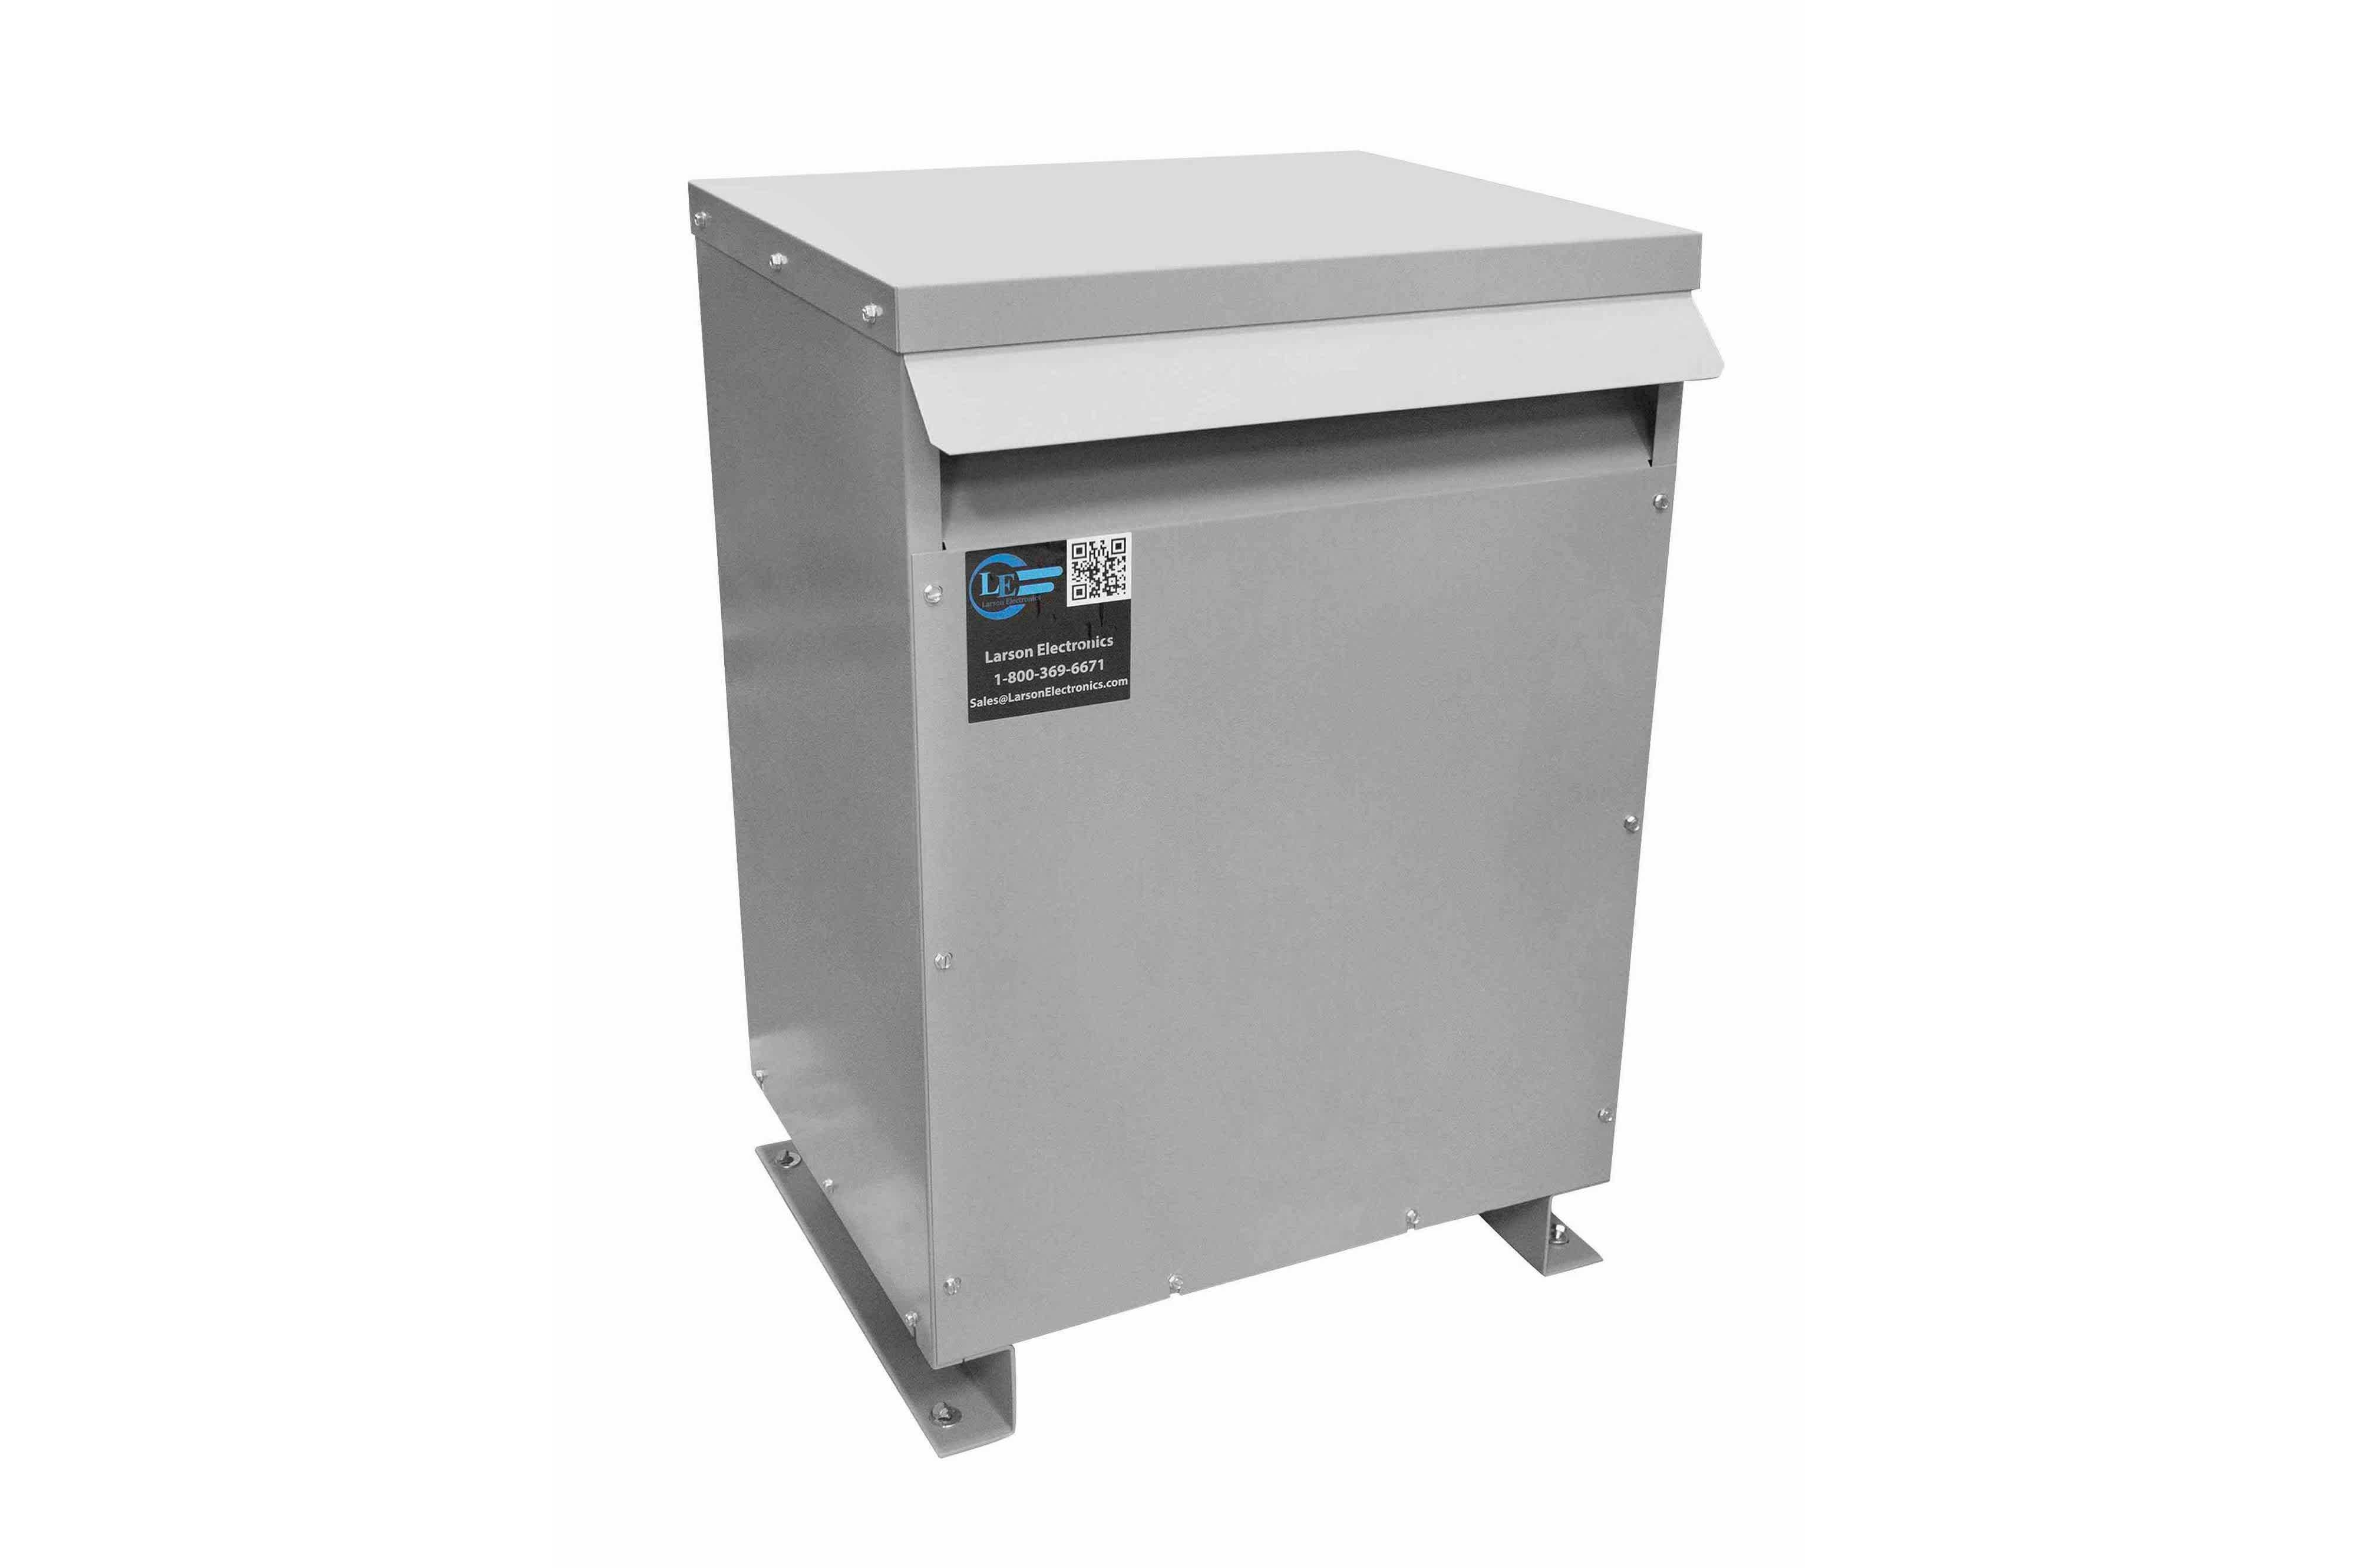 36 kVA 3PH Isolation Transformer, 208V Delta Primary, 415V Delta Secondary, N3R, Ventilated, 60 Hz